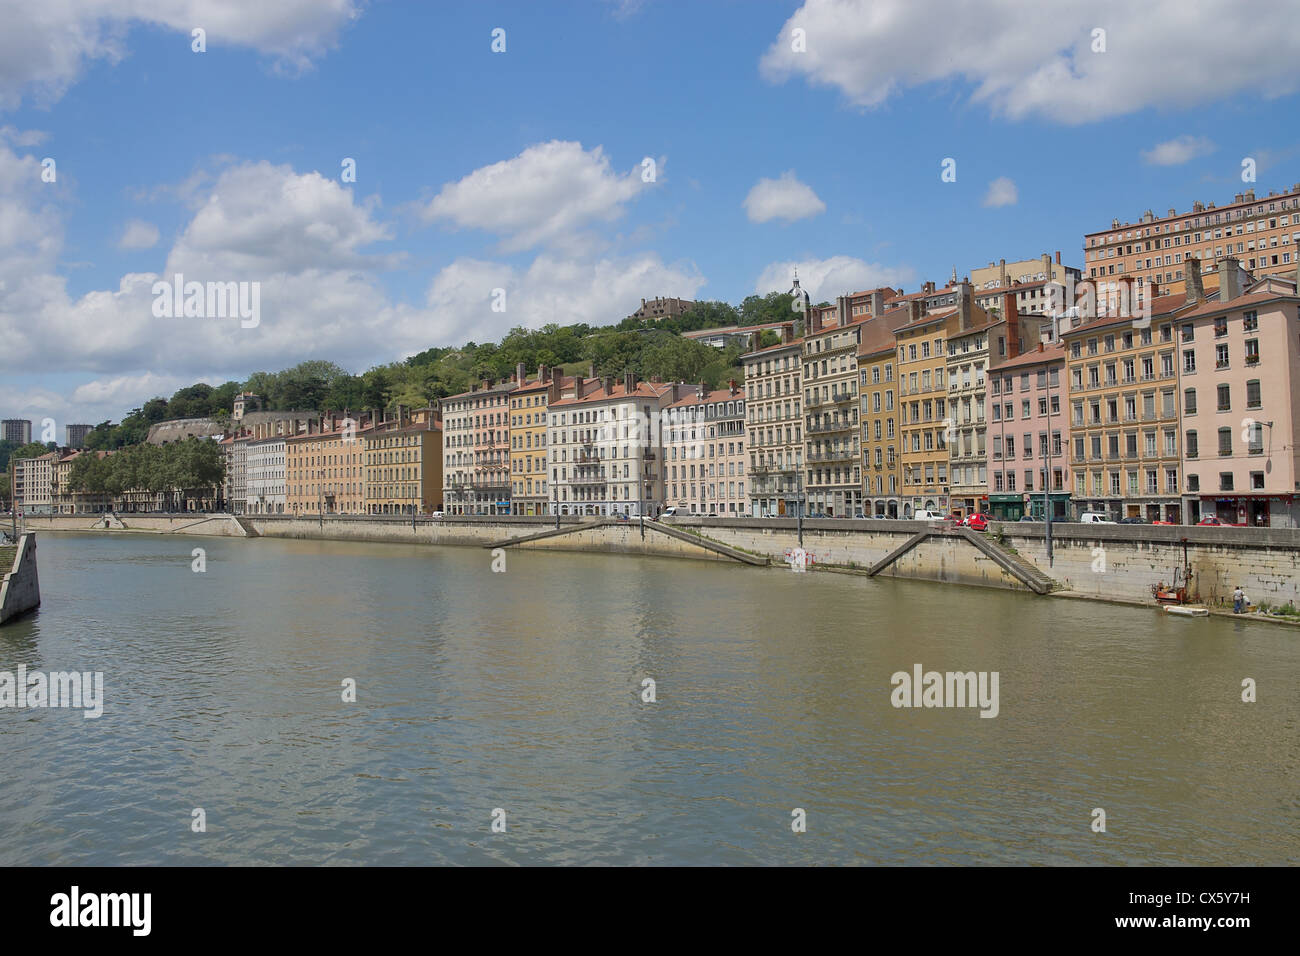 Old buildings on the quay of Saone river in the historical part of Lyon (UNESCO site), France - Stock Image